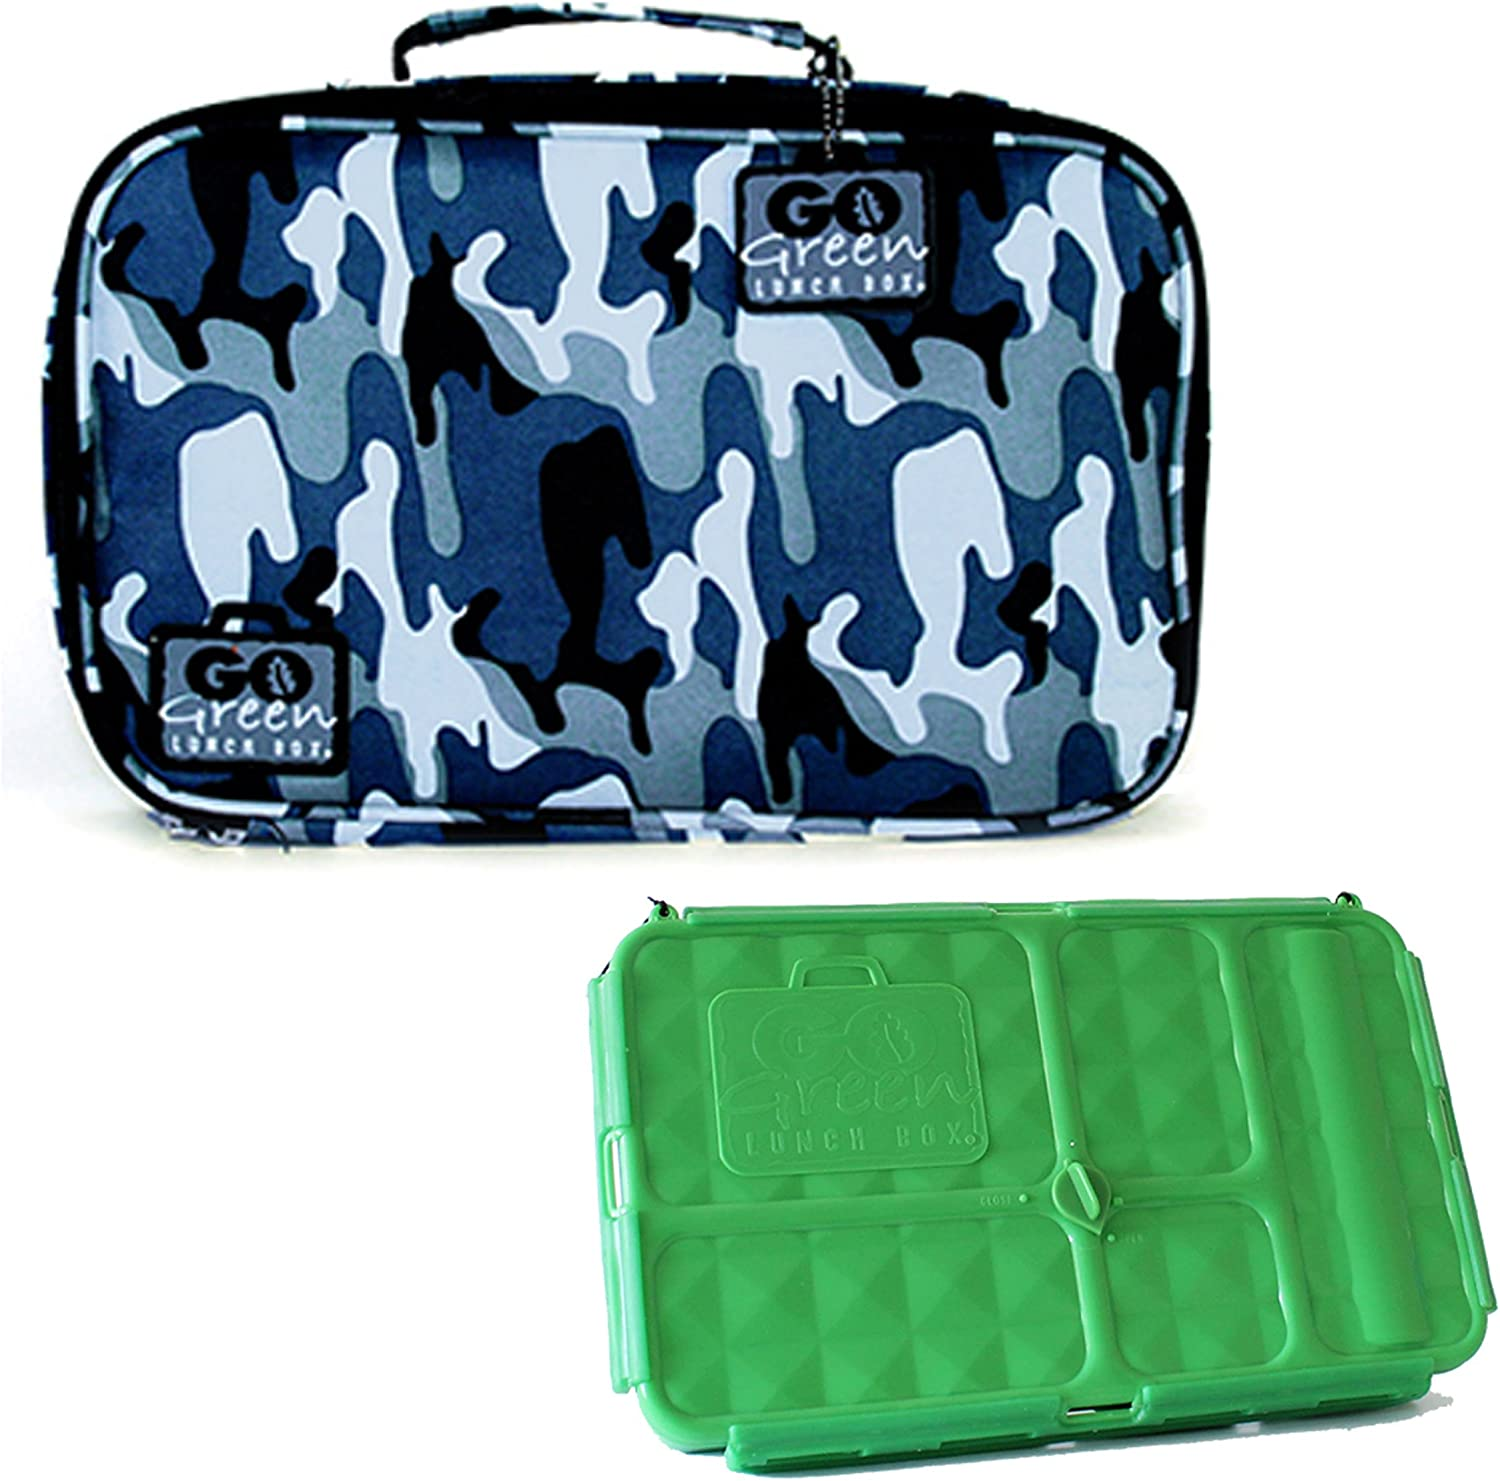 Top 10 Best Kids Lunch Boxes (2020 Reviews & Buying Guide) 5